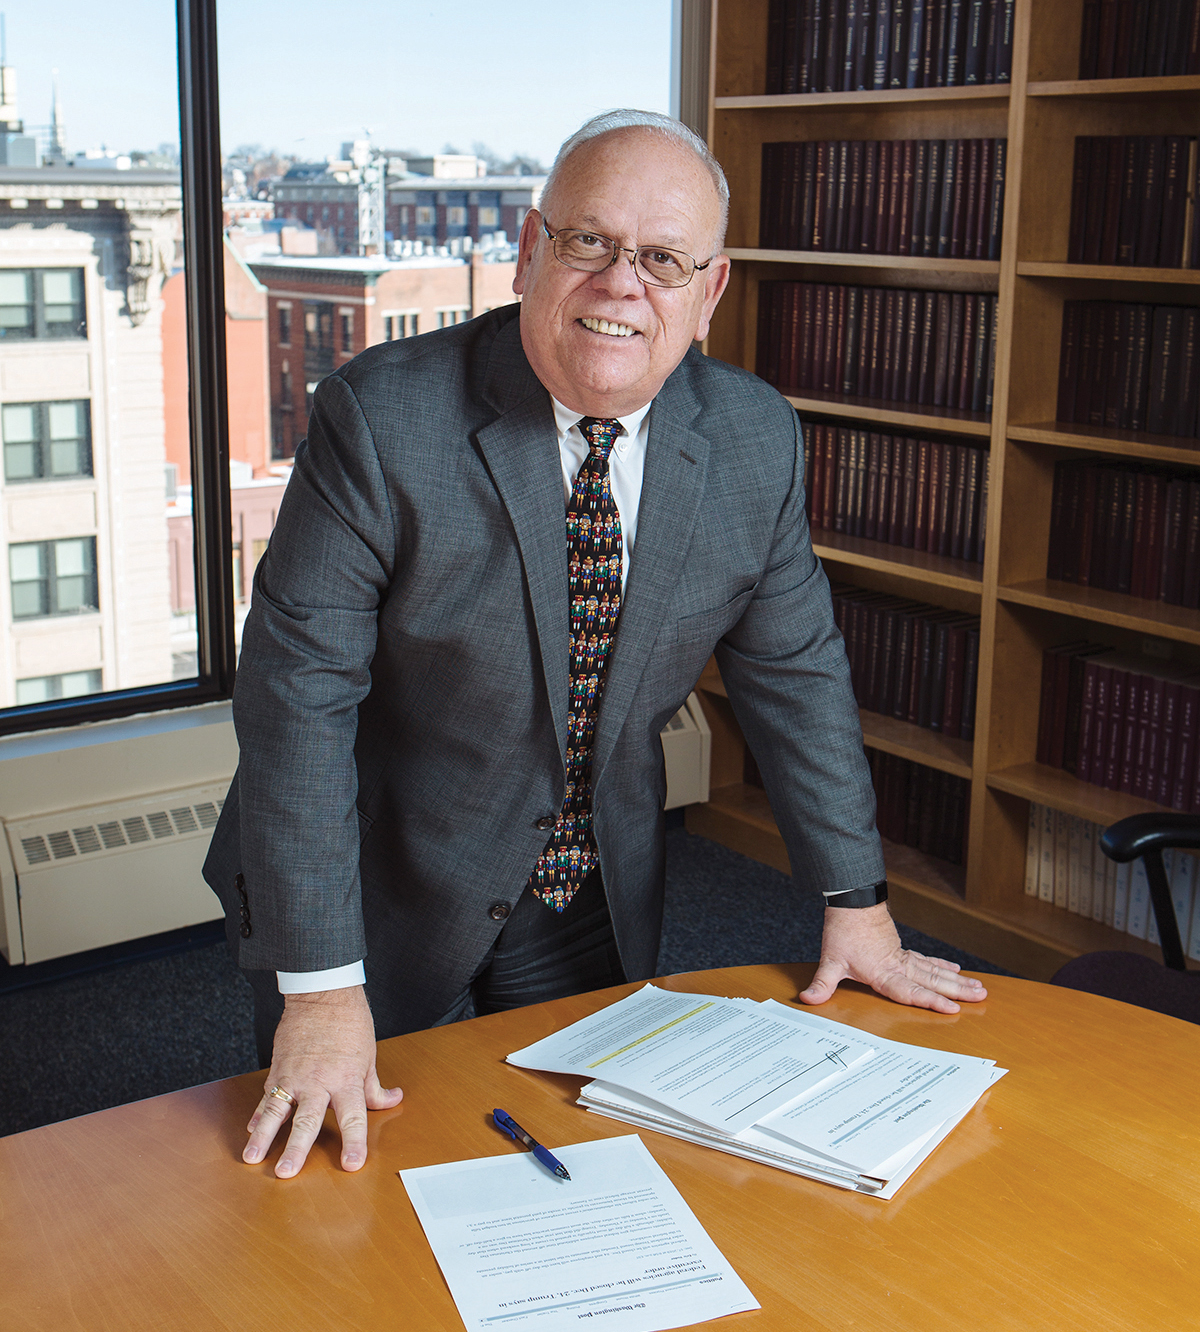 STEADFAST: Mark S. Hayward, director of the SBA's Rhode Island district office, says businesses that persevere will find the help they need to bounce back from the coronavirus crisis. / PBN FILE PHOTO/RUPERT WHITELEY